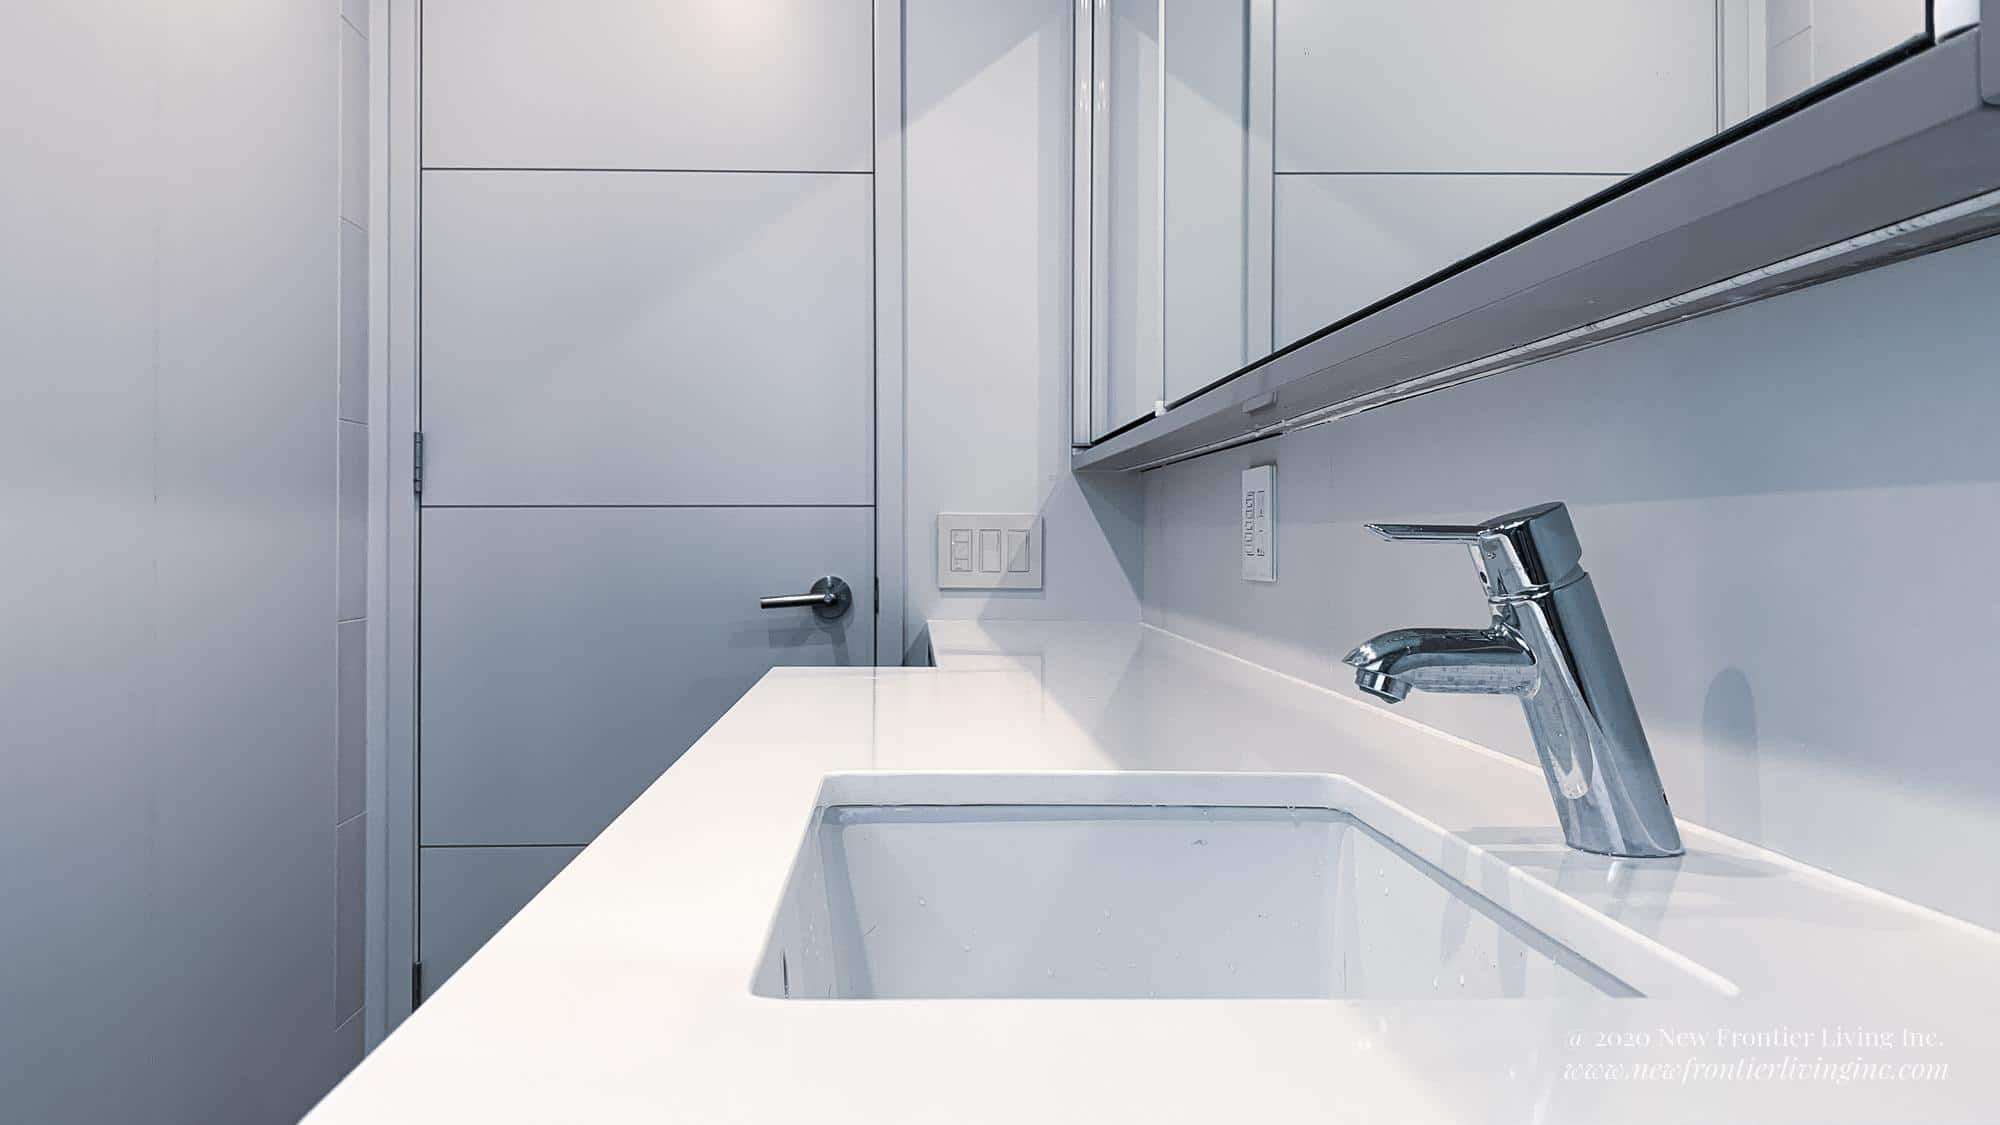 White counter in the bathroom with a single sink